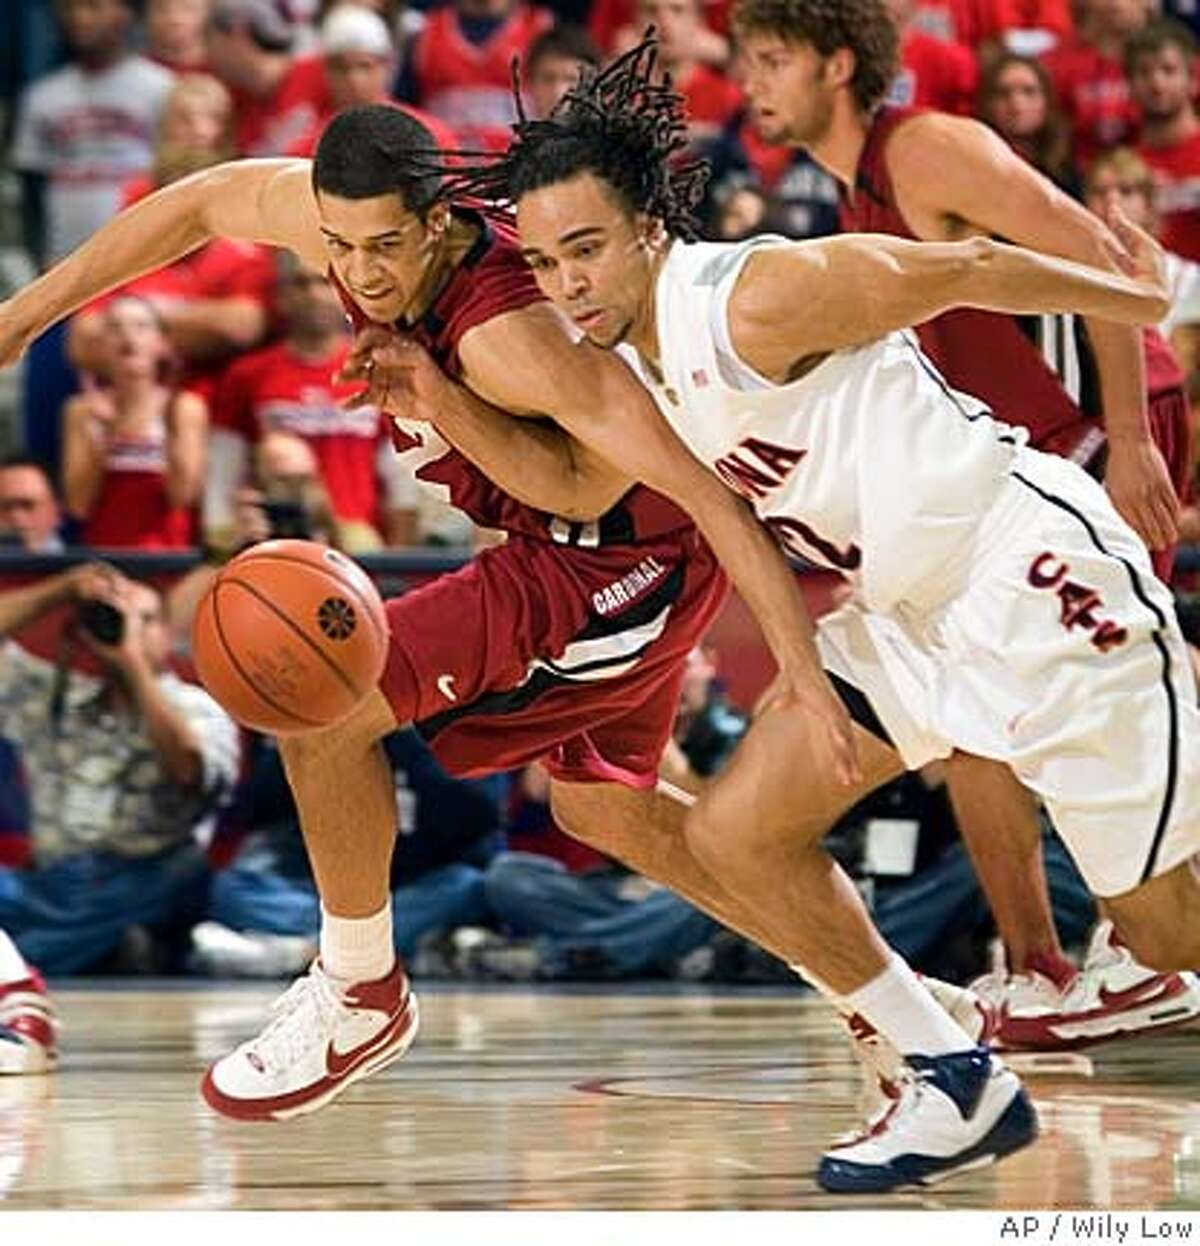 Stanford's Landry Fields, left, and Arizona's Daniel Dillon battle for a loose ball in the first half of a college basketball game at McKale Center in Tucson, Ariz., Saturday, Feb. 16, 2008. (AP Photo/Wily Low)